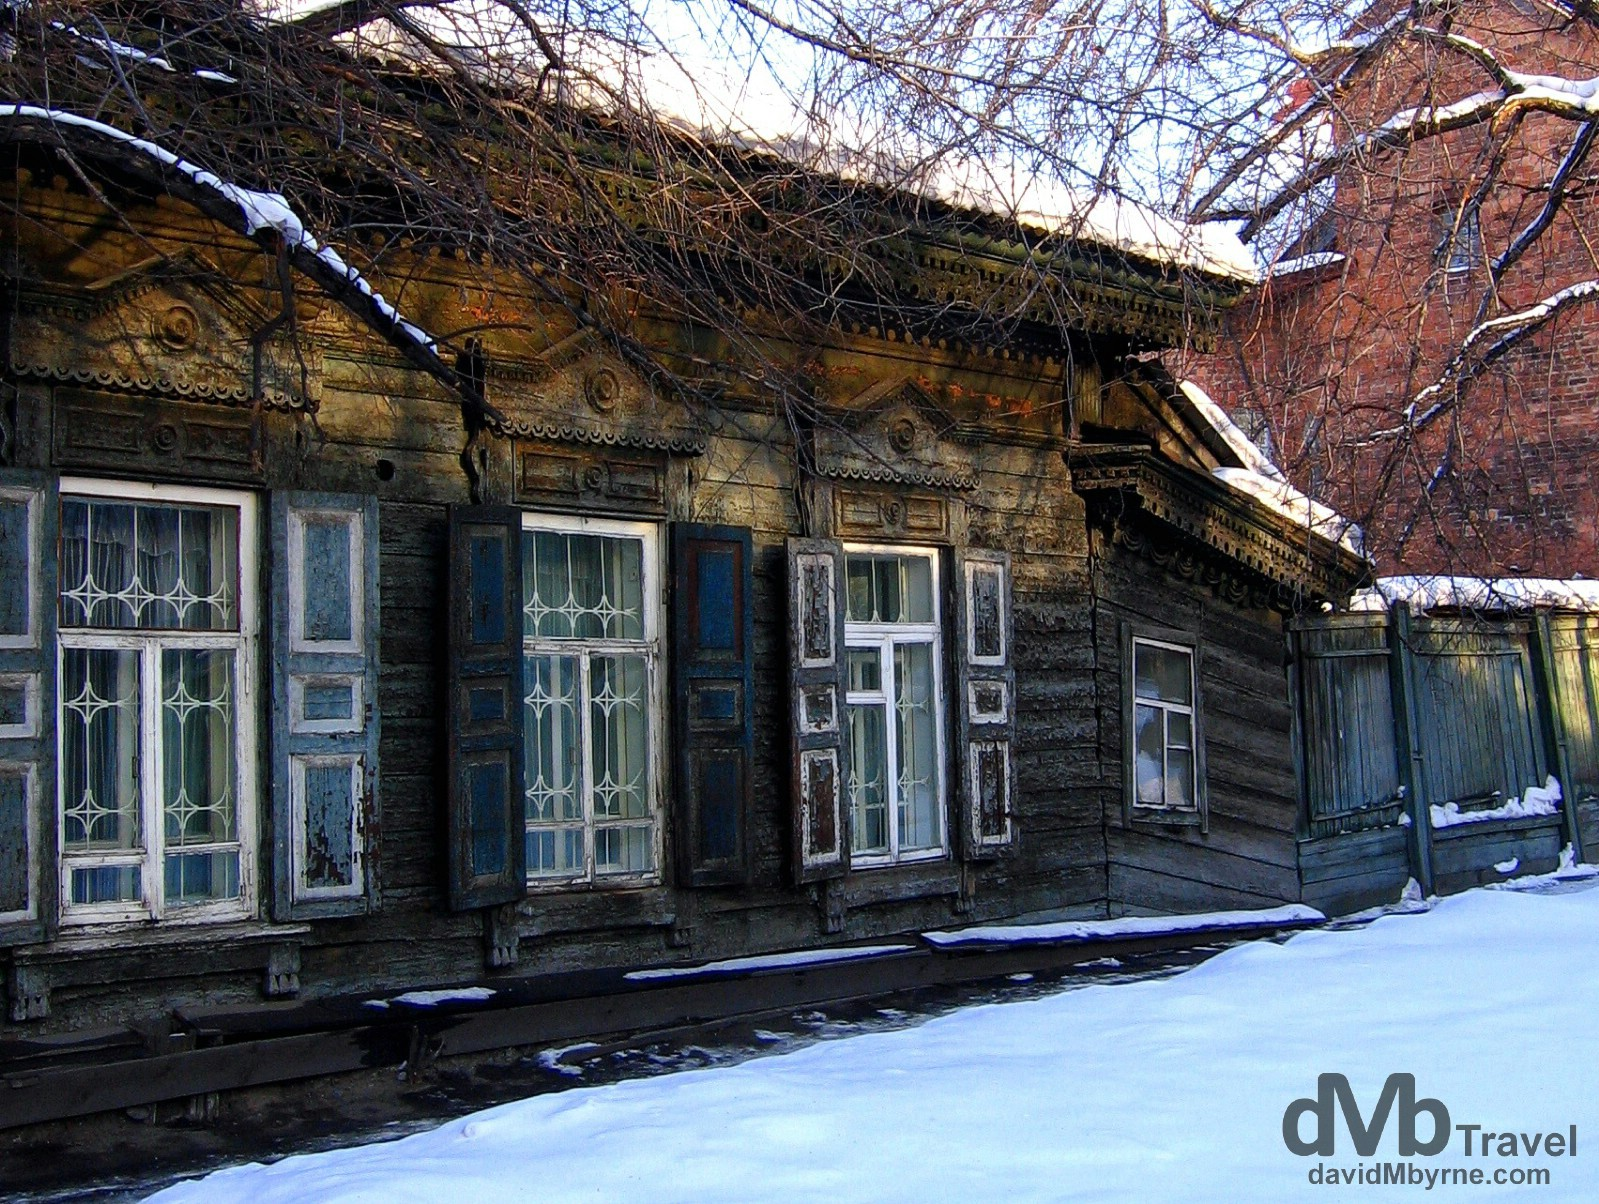 Crumbling wooden buildings on Ul Chkalova, Irkutsk, Siberian Russia. February 17, 2006.